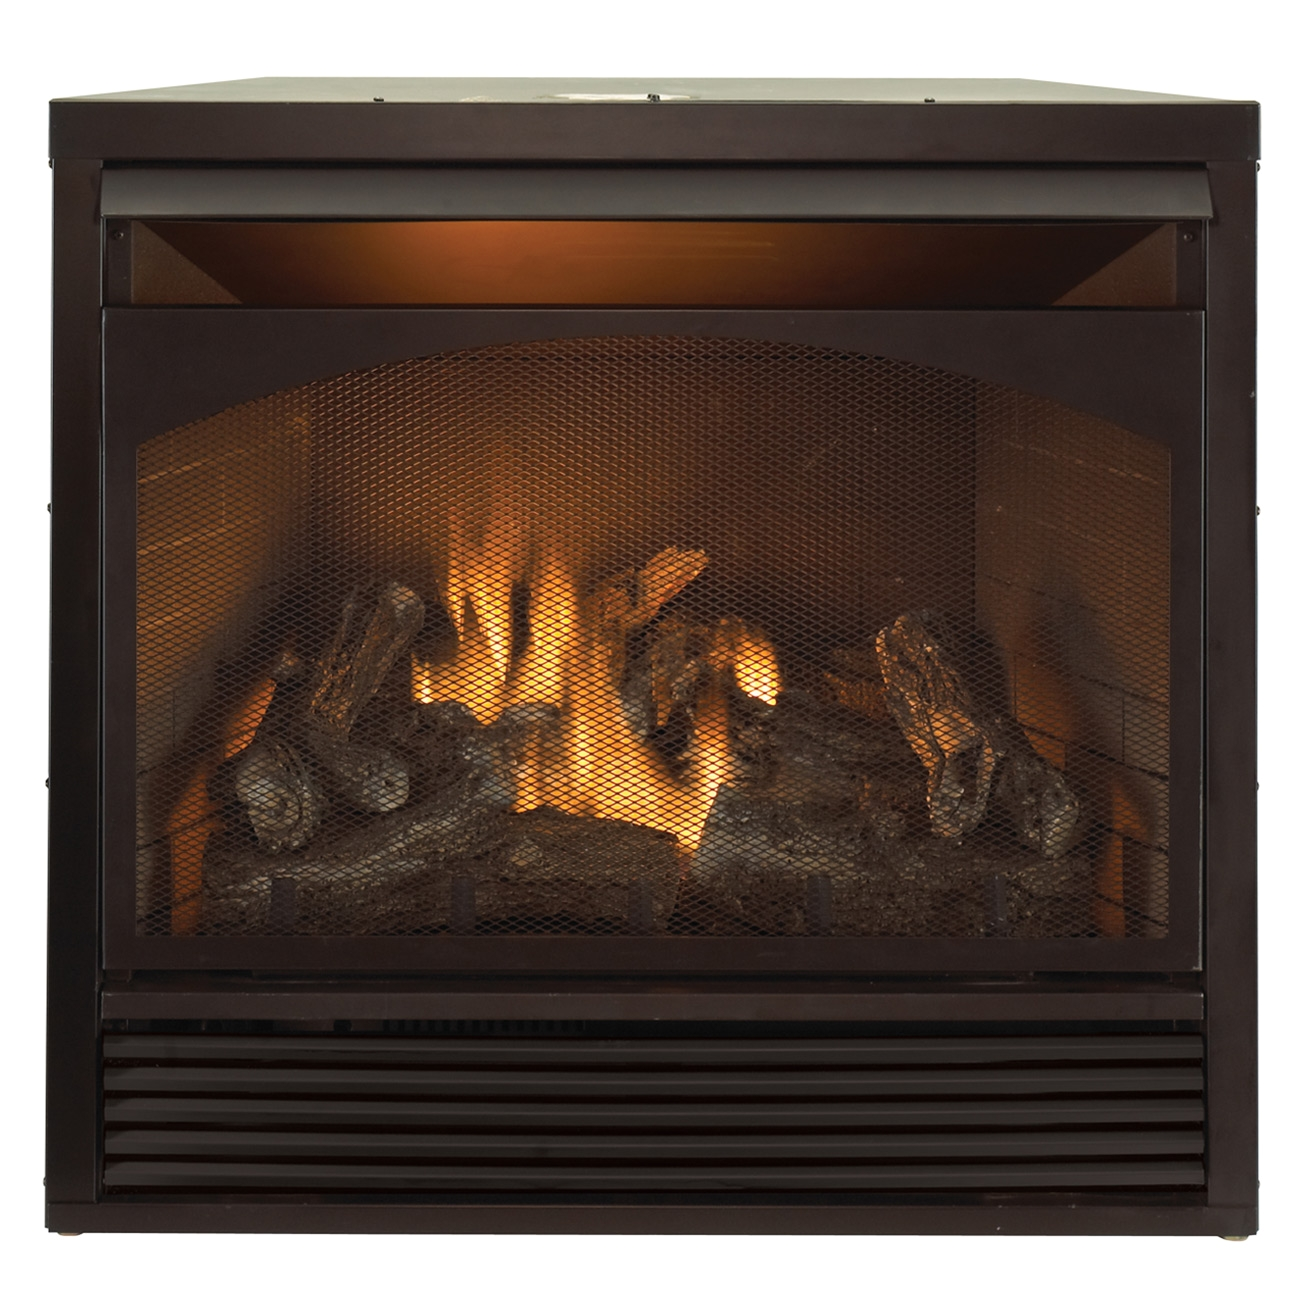 ventless gas fireplace stores near me gas fireplace insert dual fuel technology with remote control of ventless gas fireplace stores near me